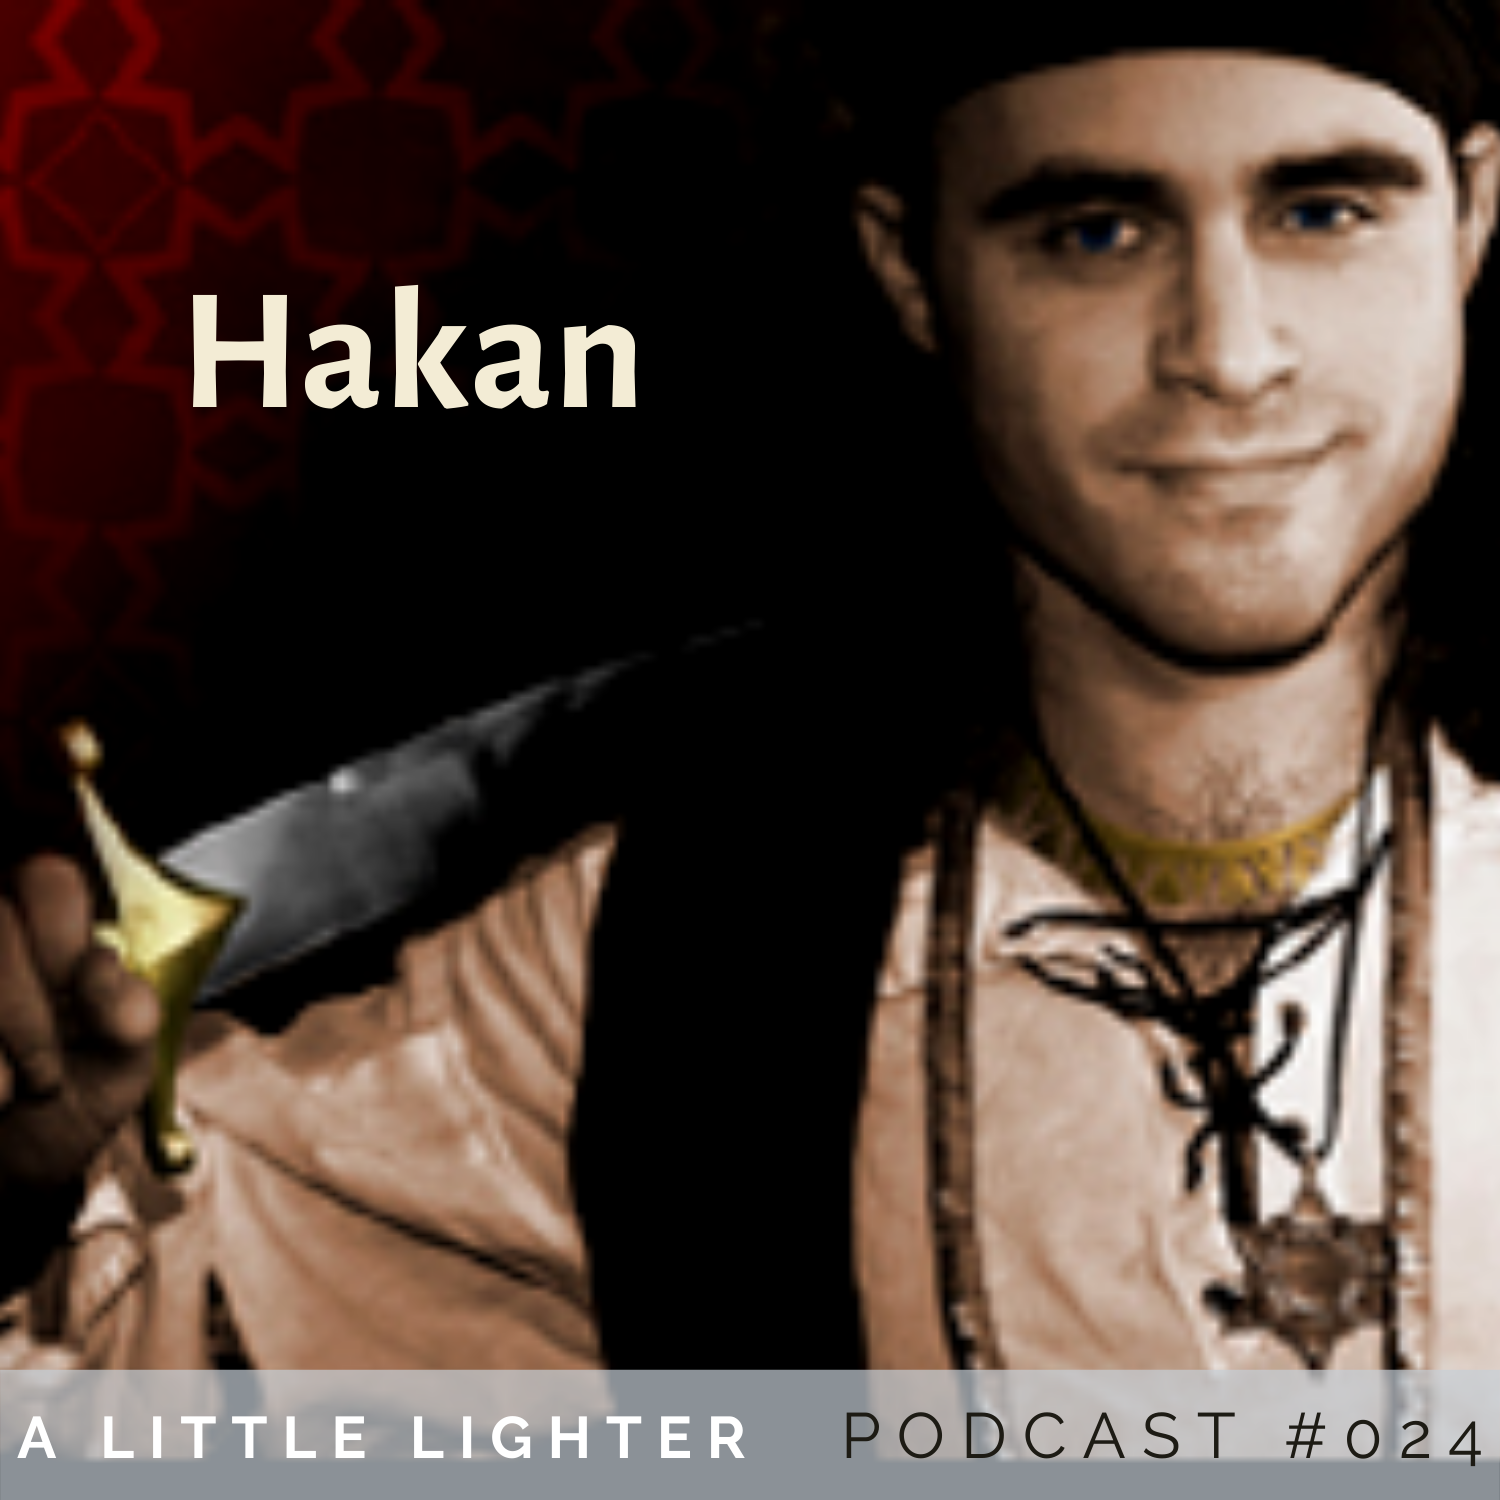 Belly Dance Podcast hakan